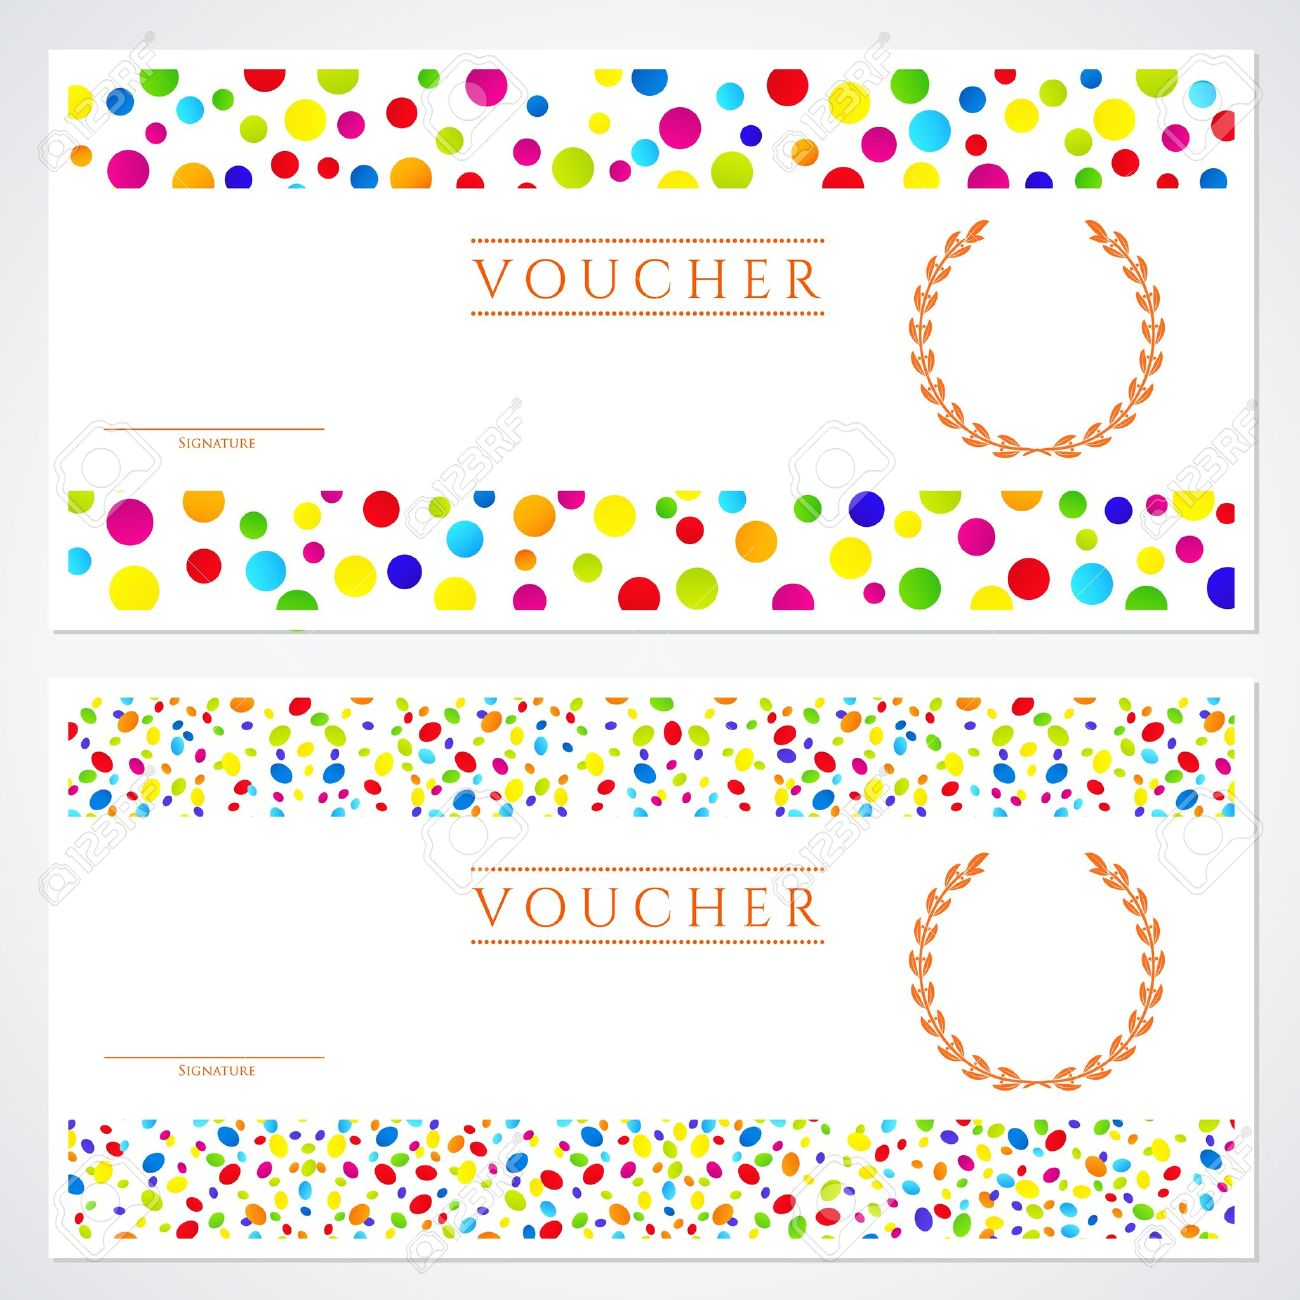 voucher gift certificate template colorful bright rainbow voucher gift certificate template colorful bright rainbow abstract background design